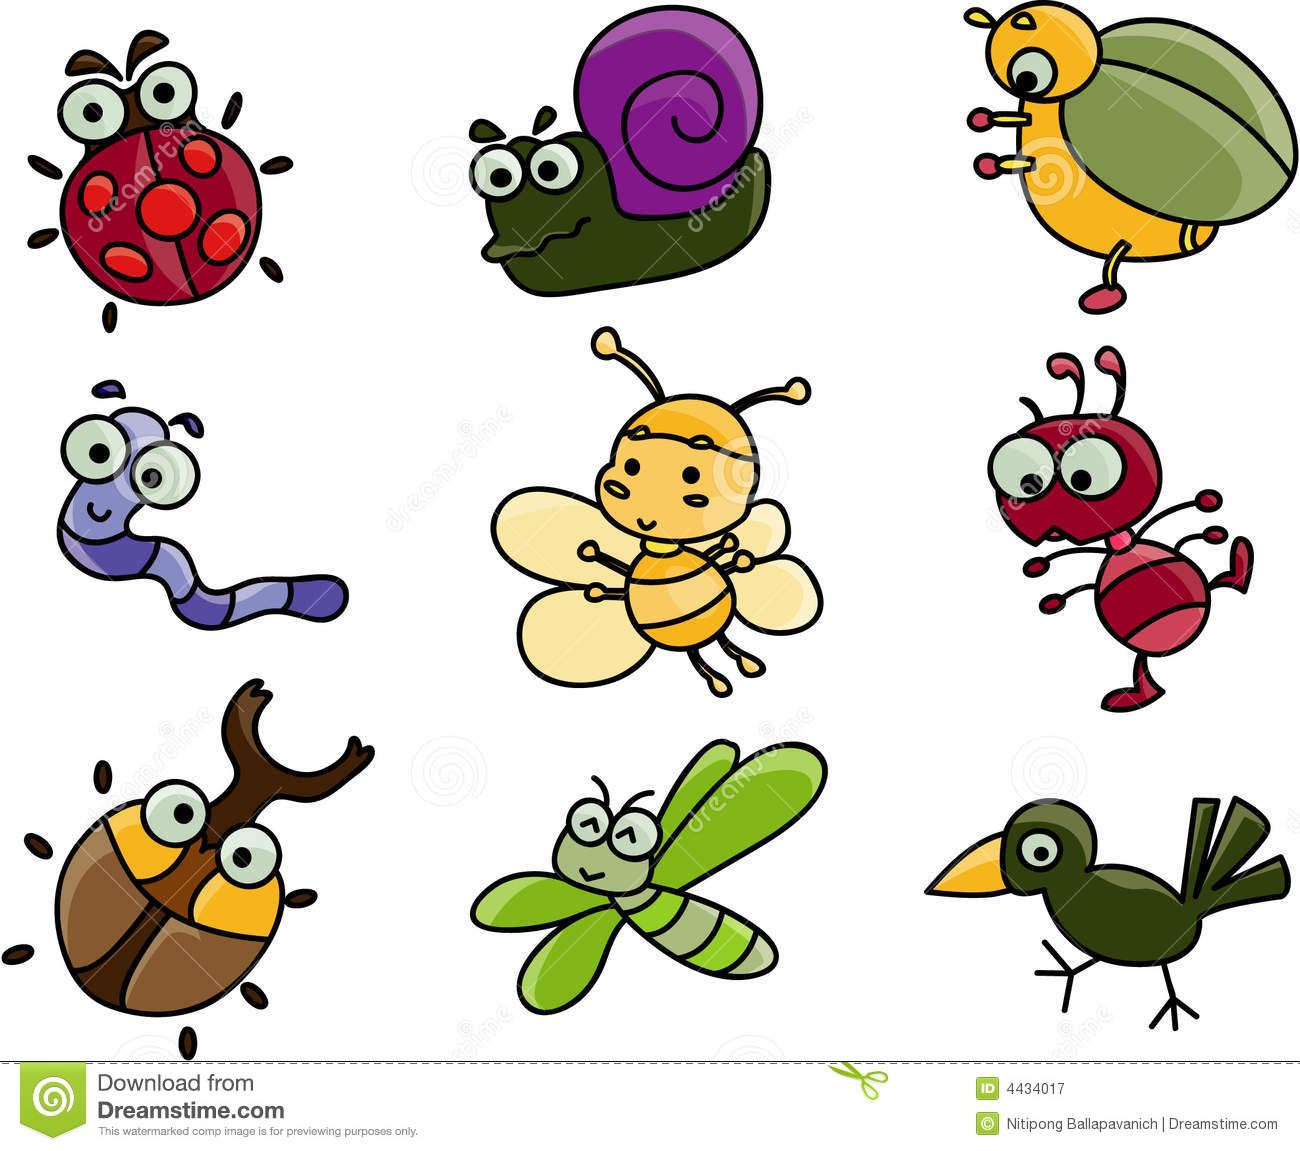 Clipart collection - . - Clipart Collection